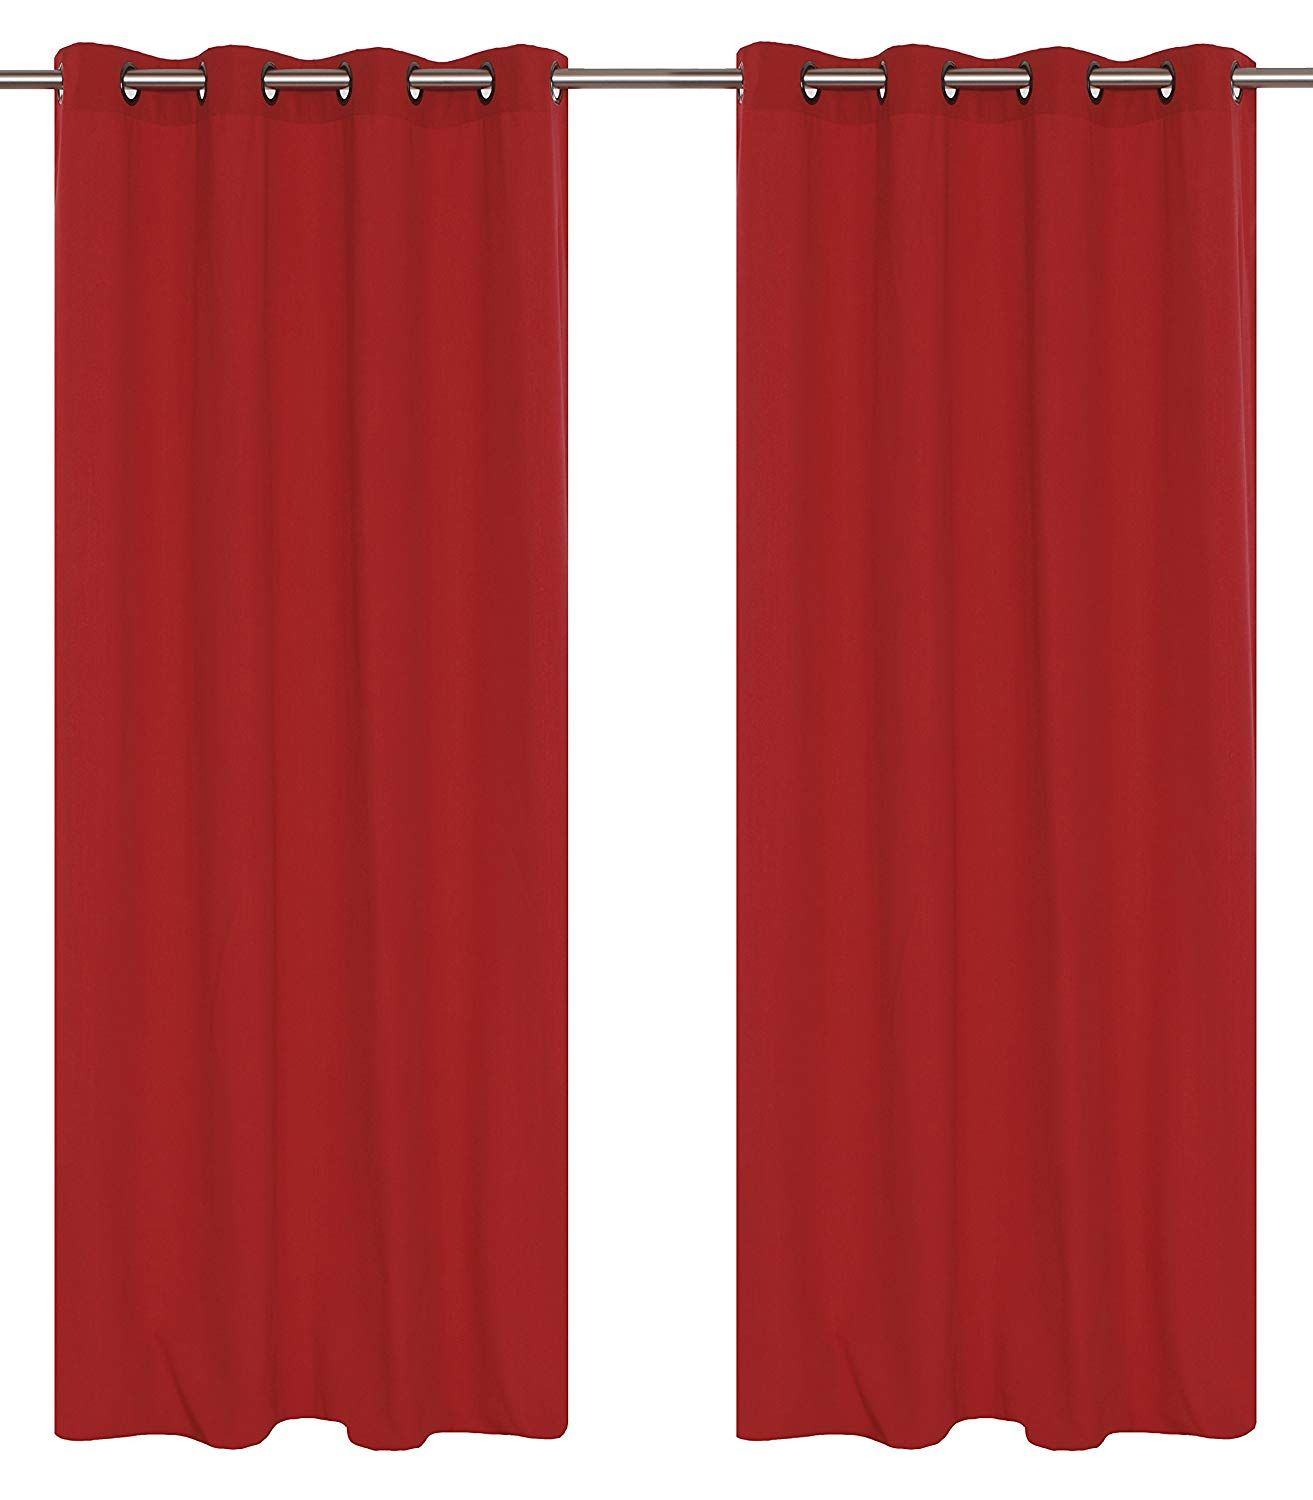 Lj Home Fashions Karma Cotton Like Grommet Curtain Panels Set Of 2